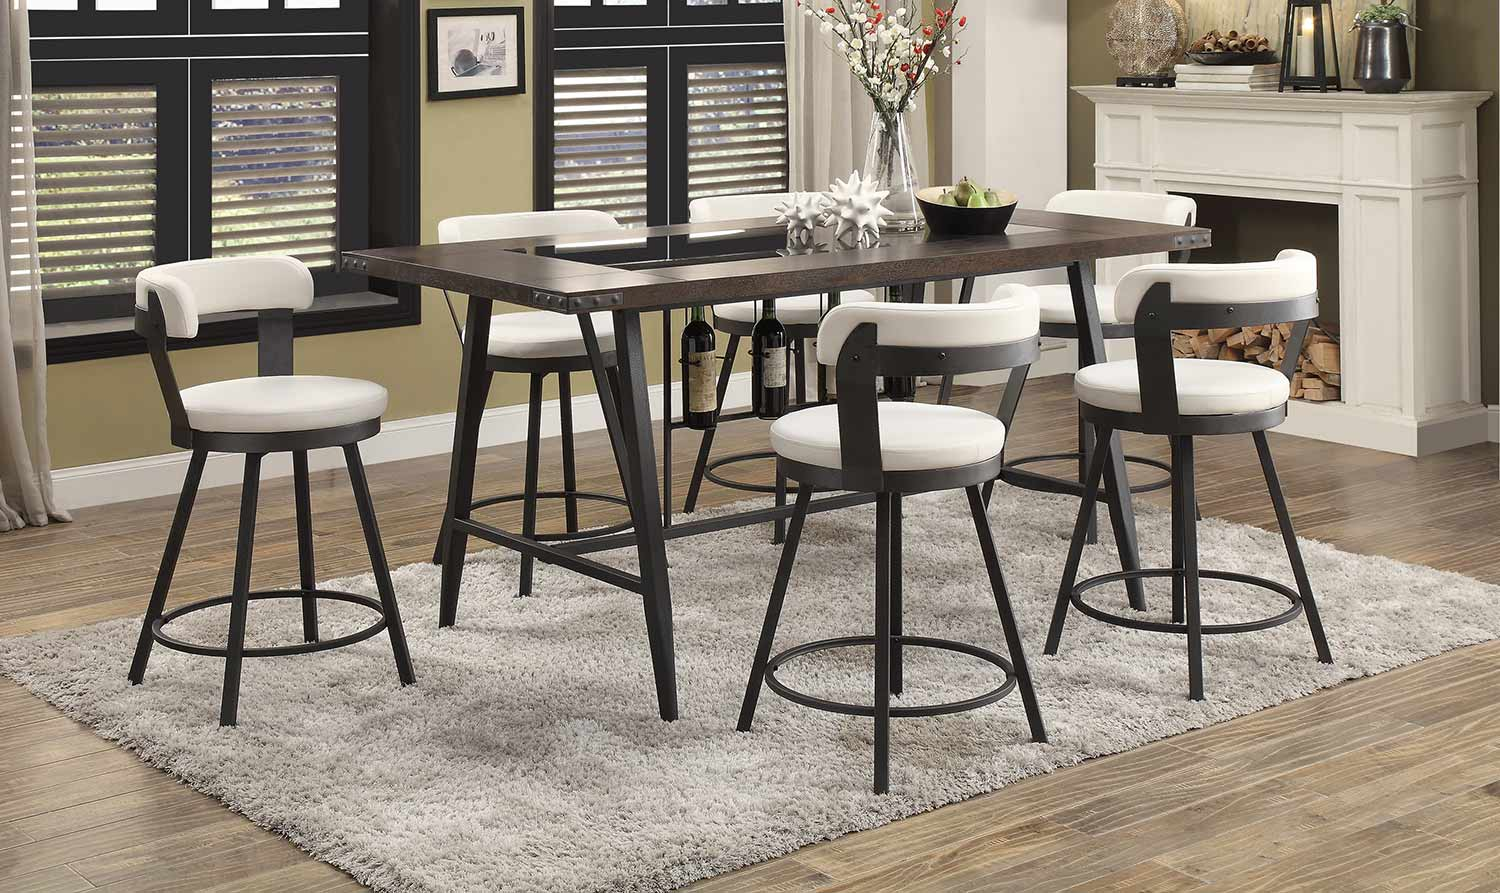 Homelegance Appert Counter Height Dining Set - White - Black Bi-Cast Vinyl